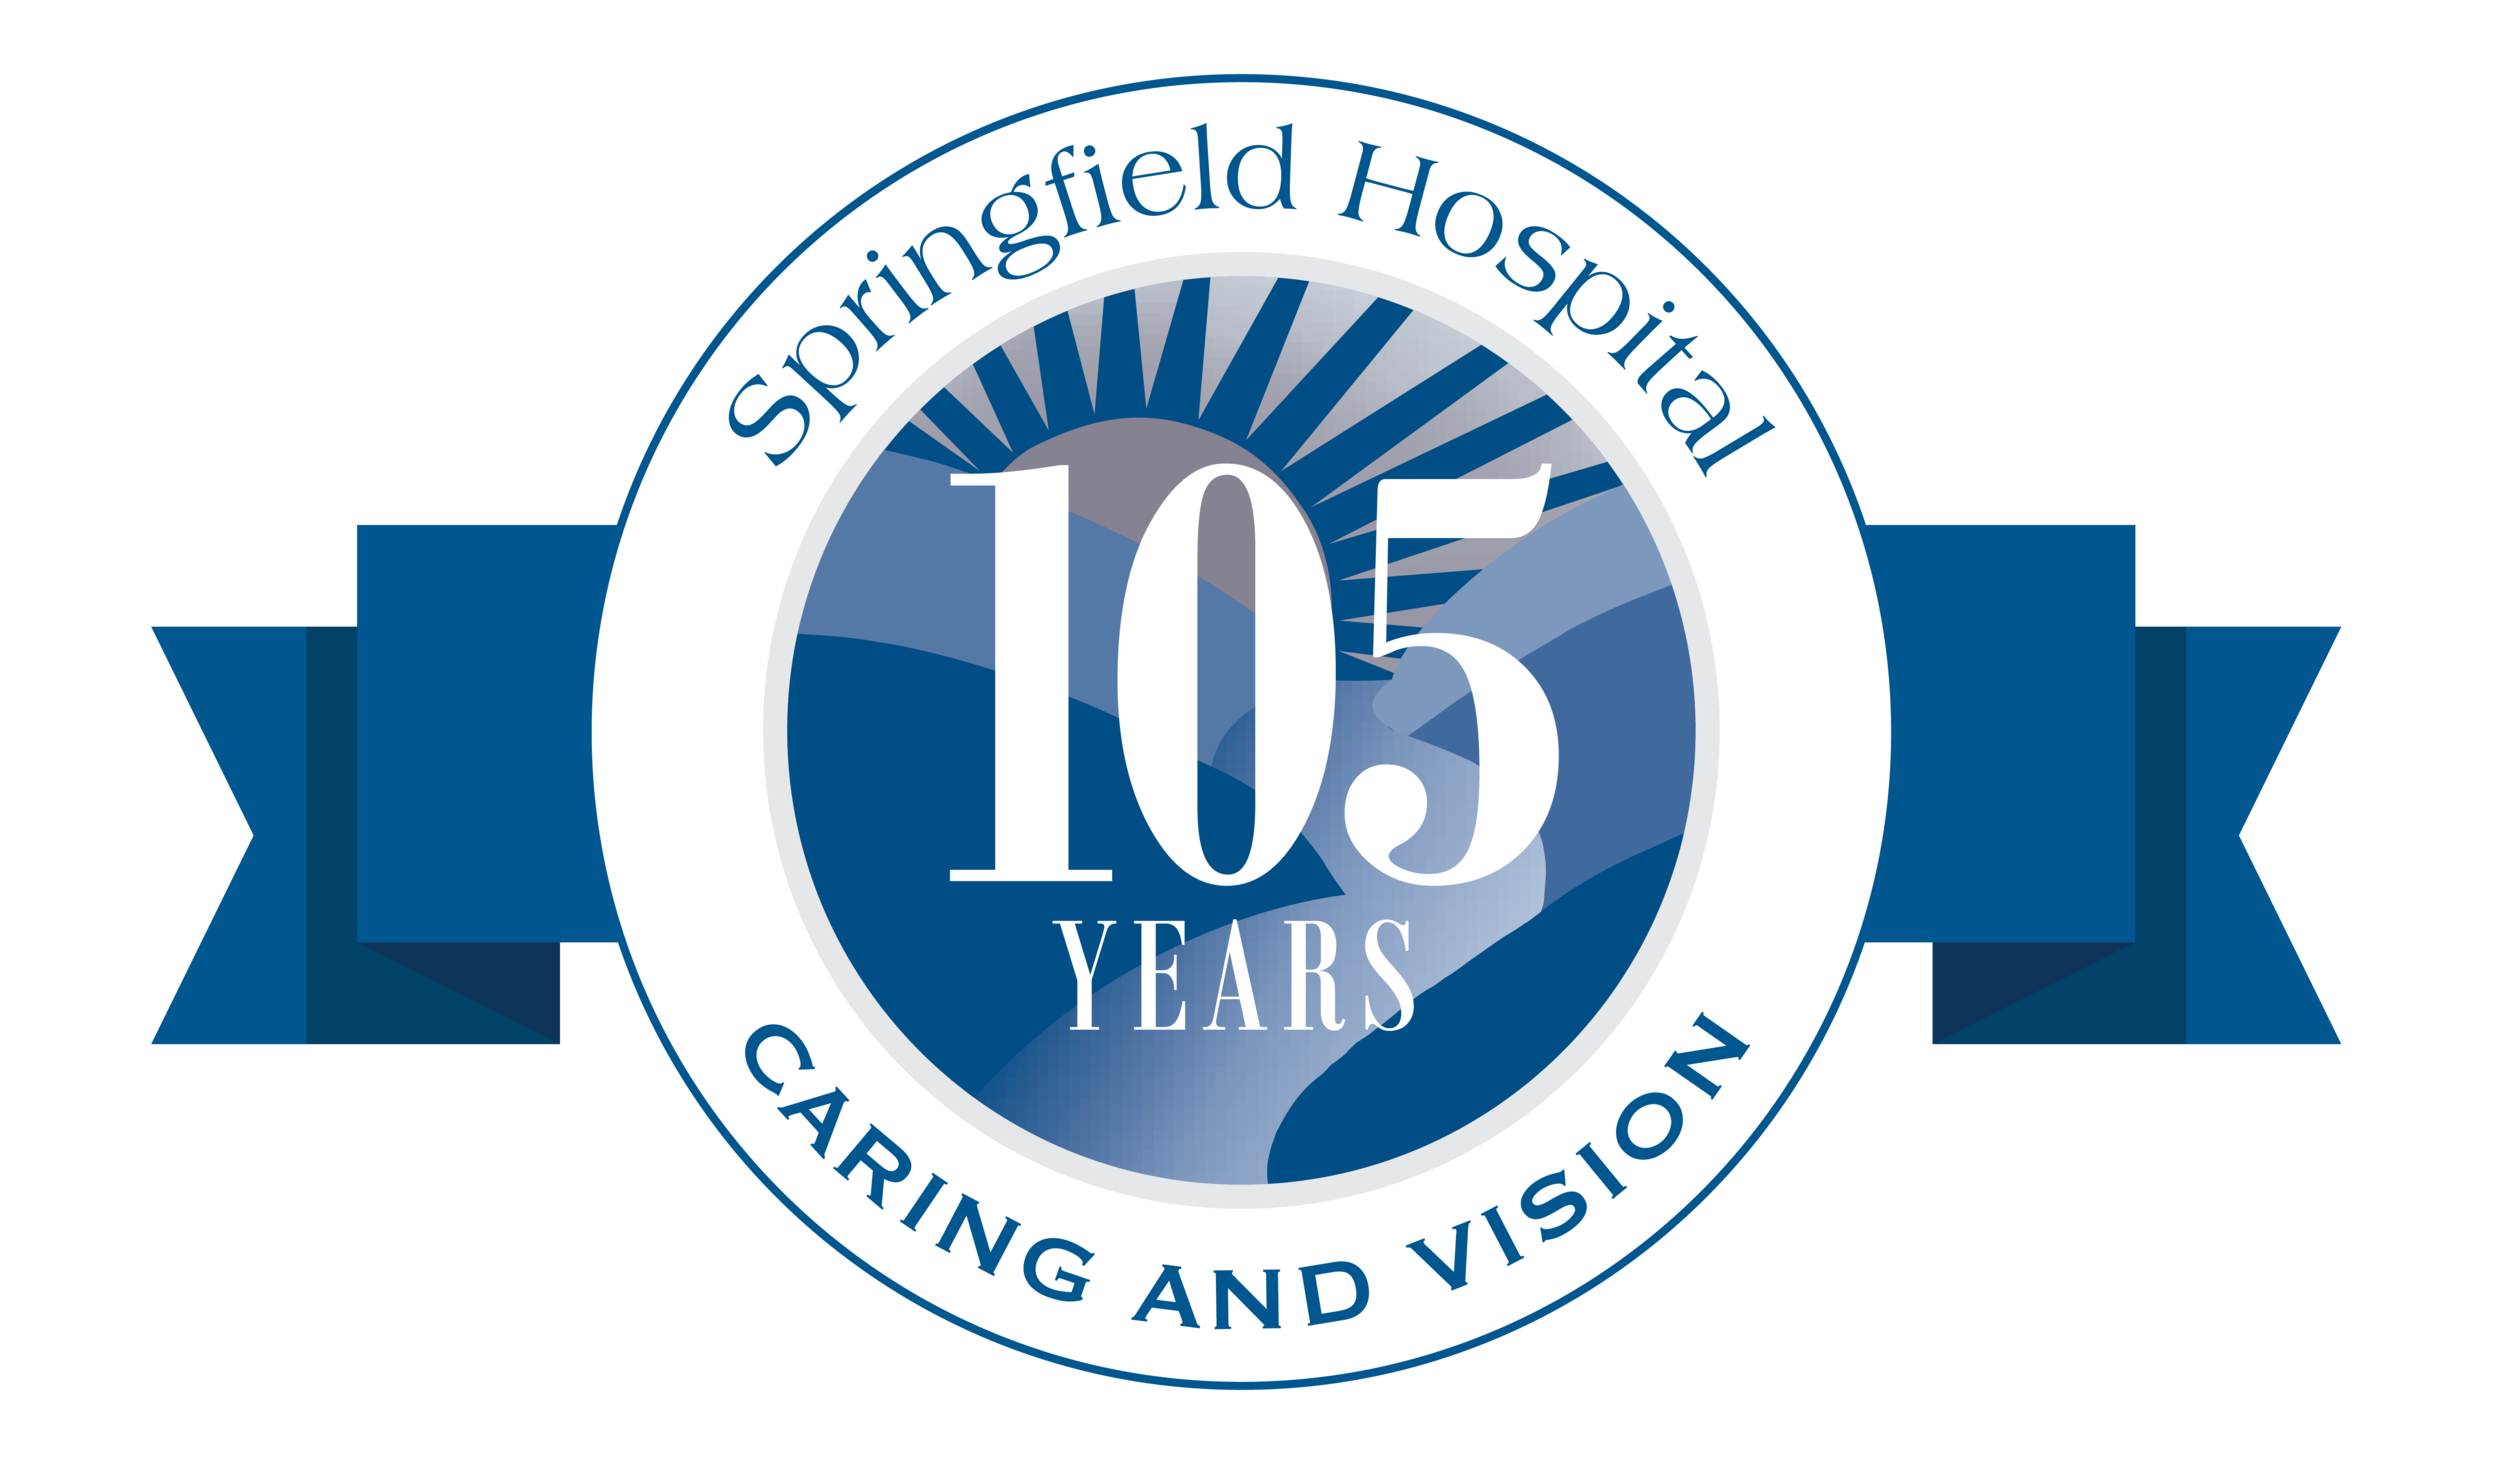 Springfield Hospital 105th Anniversary Logo (1).png